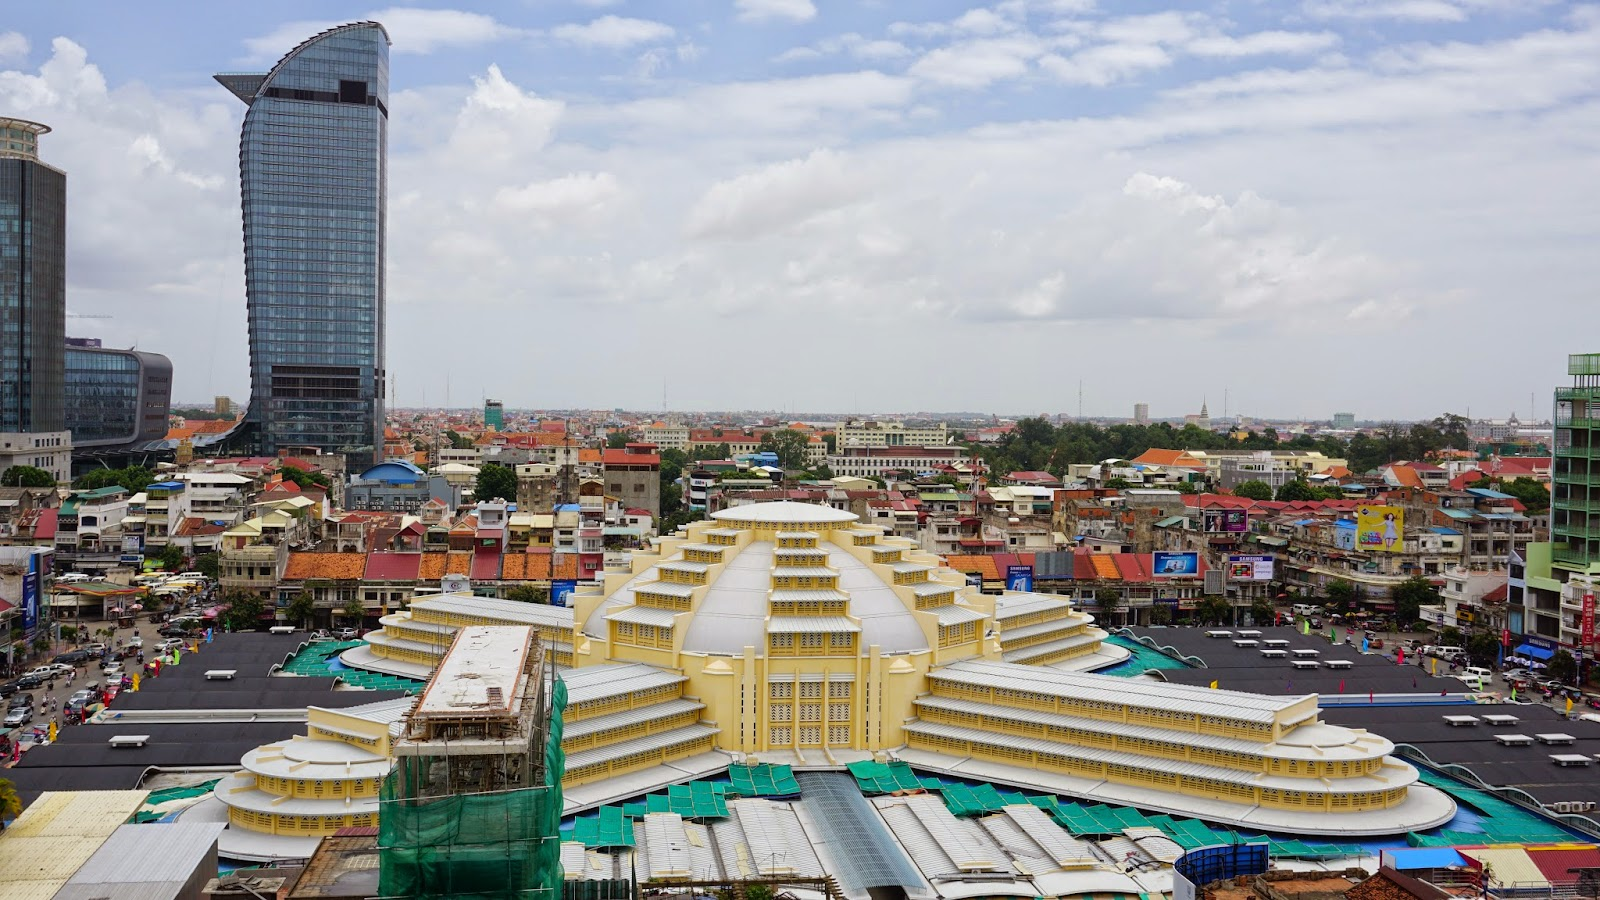 View of Phnom Penh from the roof area atop Sorya shopping centre